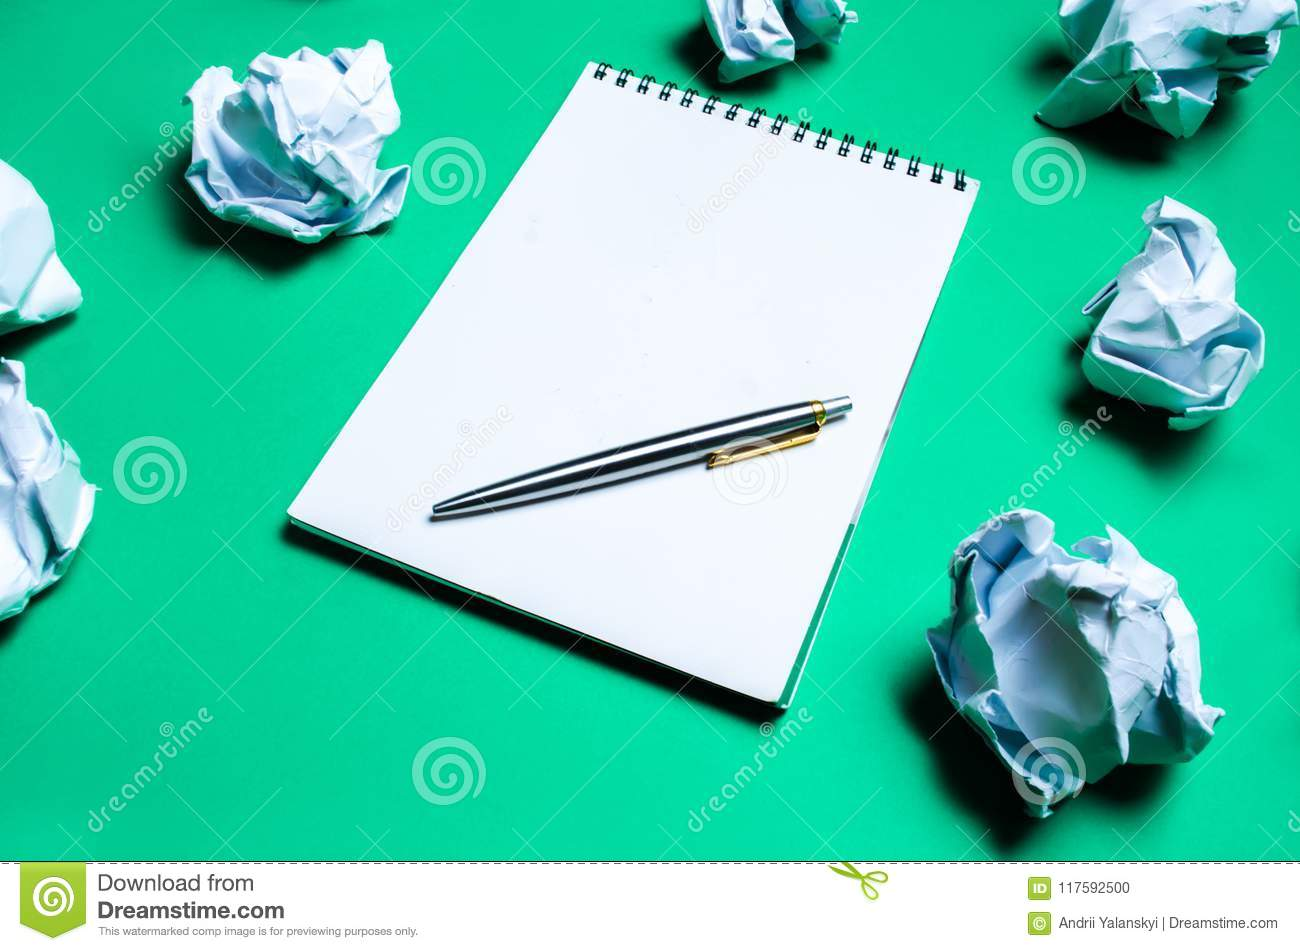 how to generate ideas for writing essays